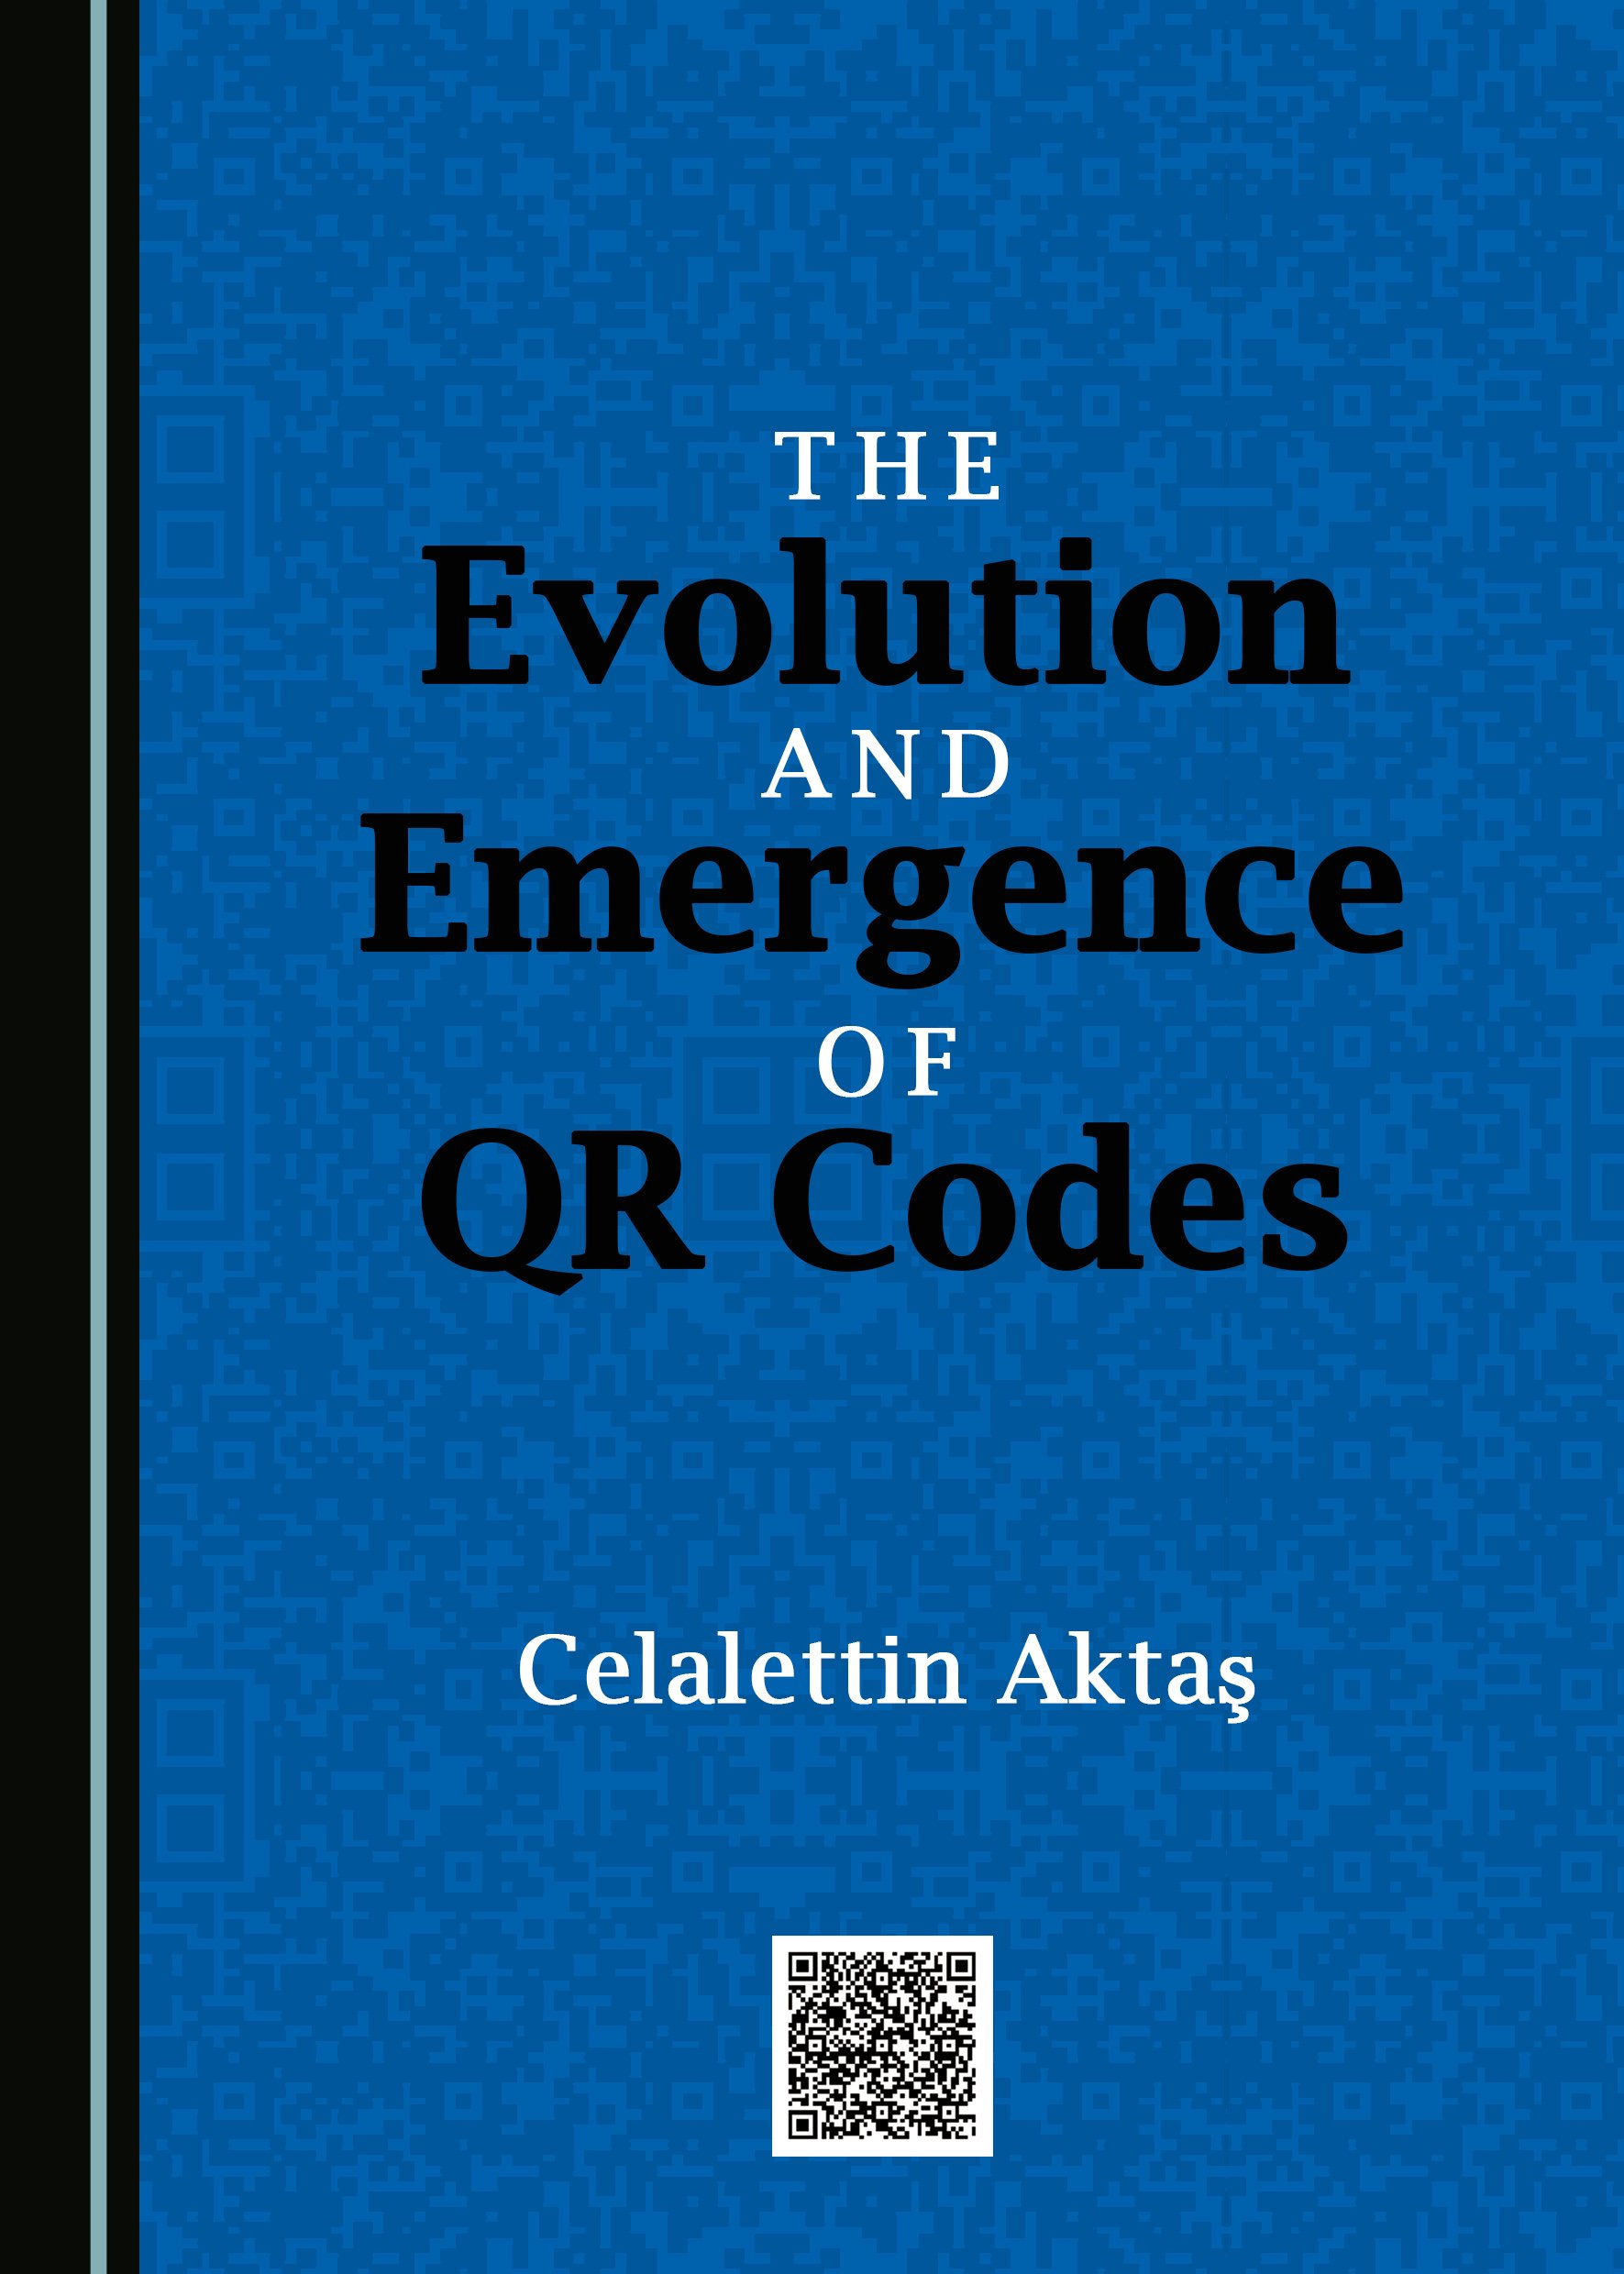 The Evolution and Emergence of QR Codes